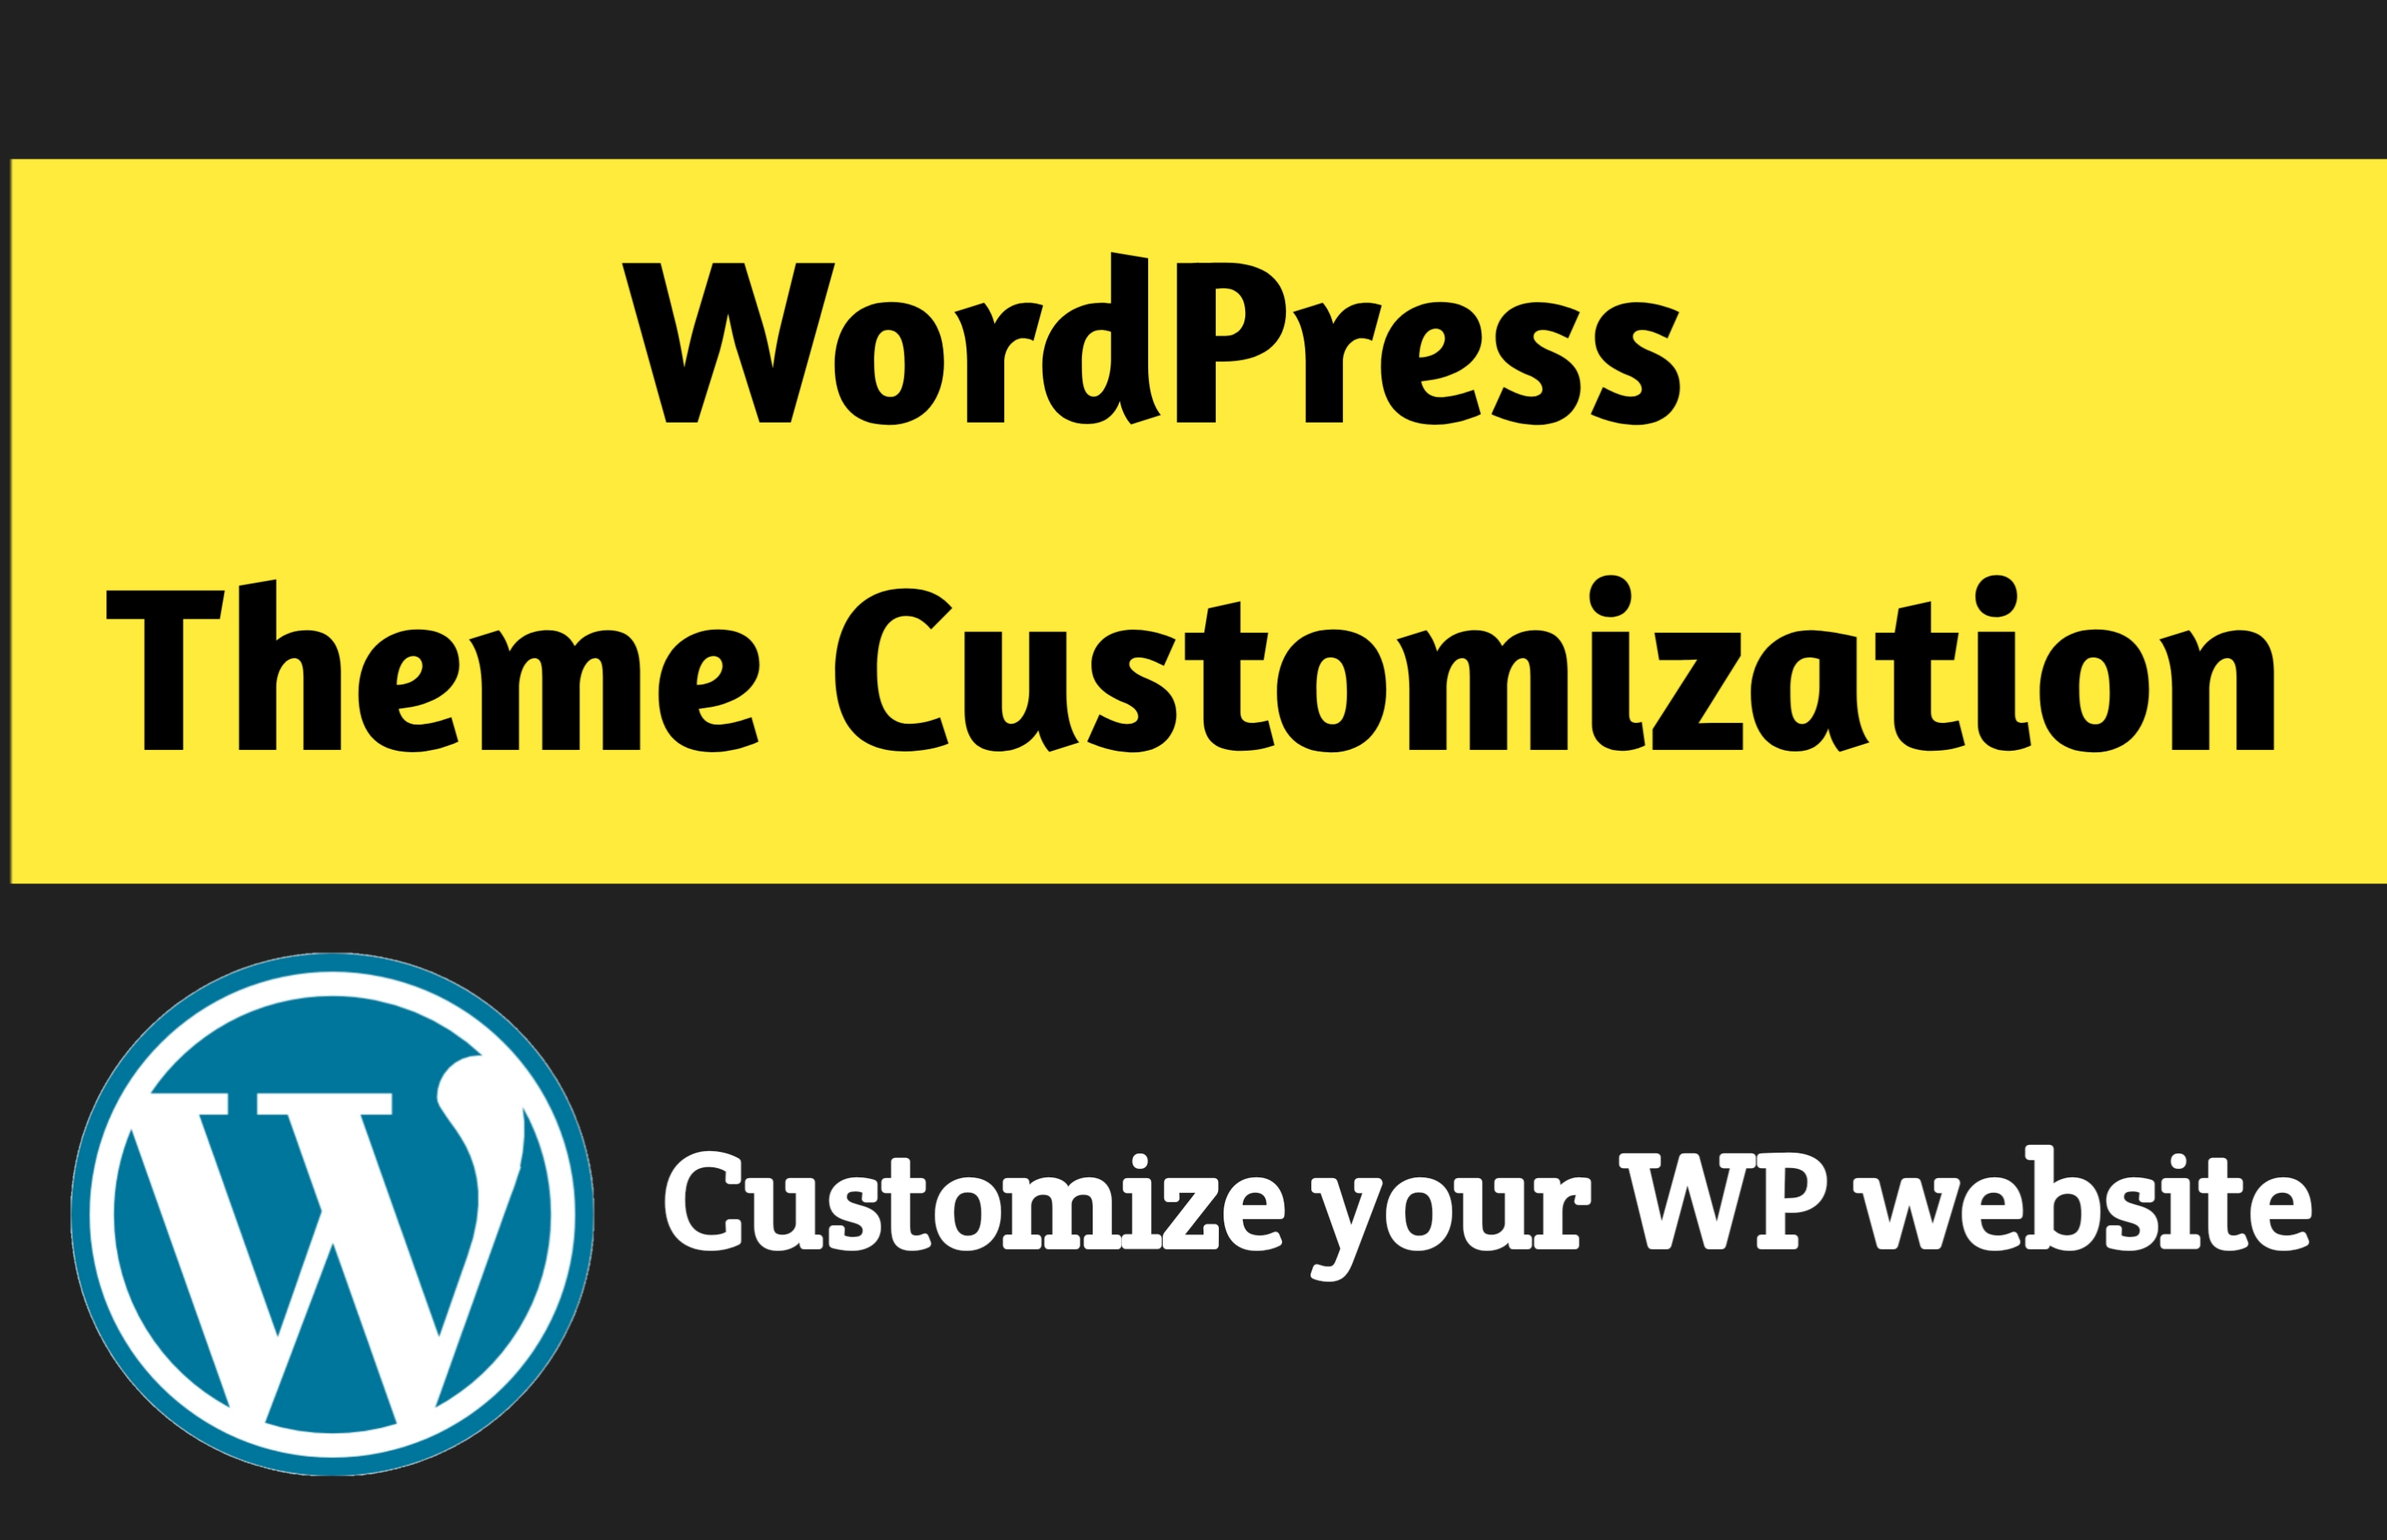 I will customize your WordPress website for your business